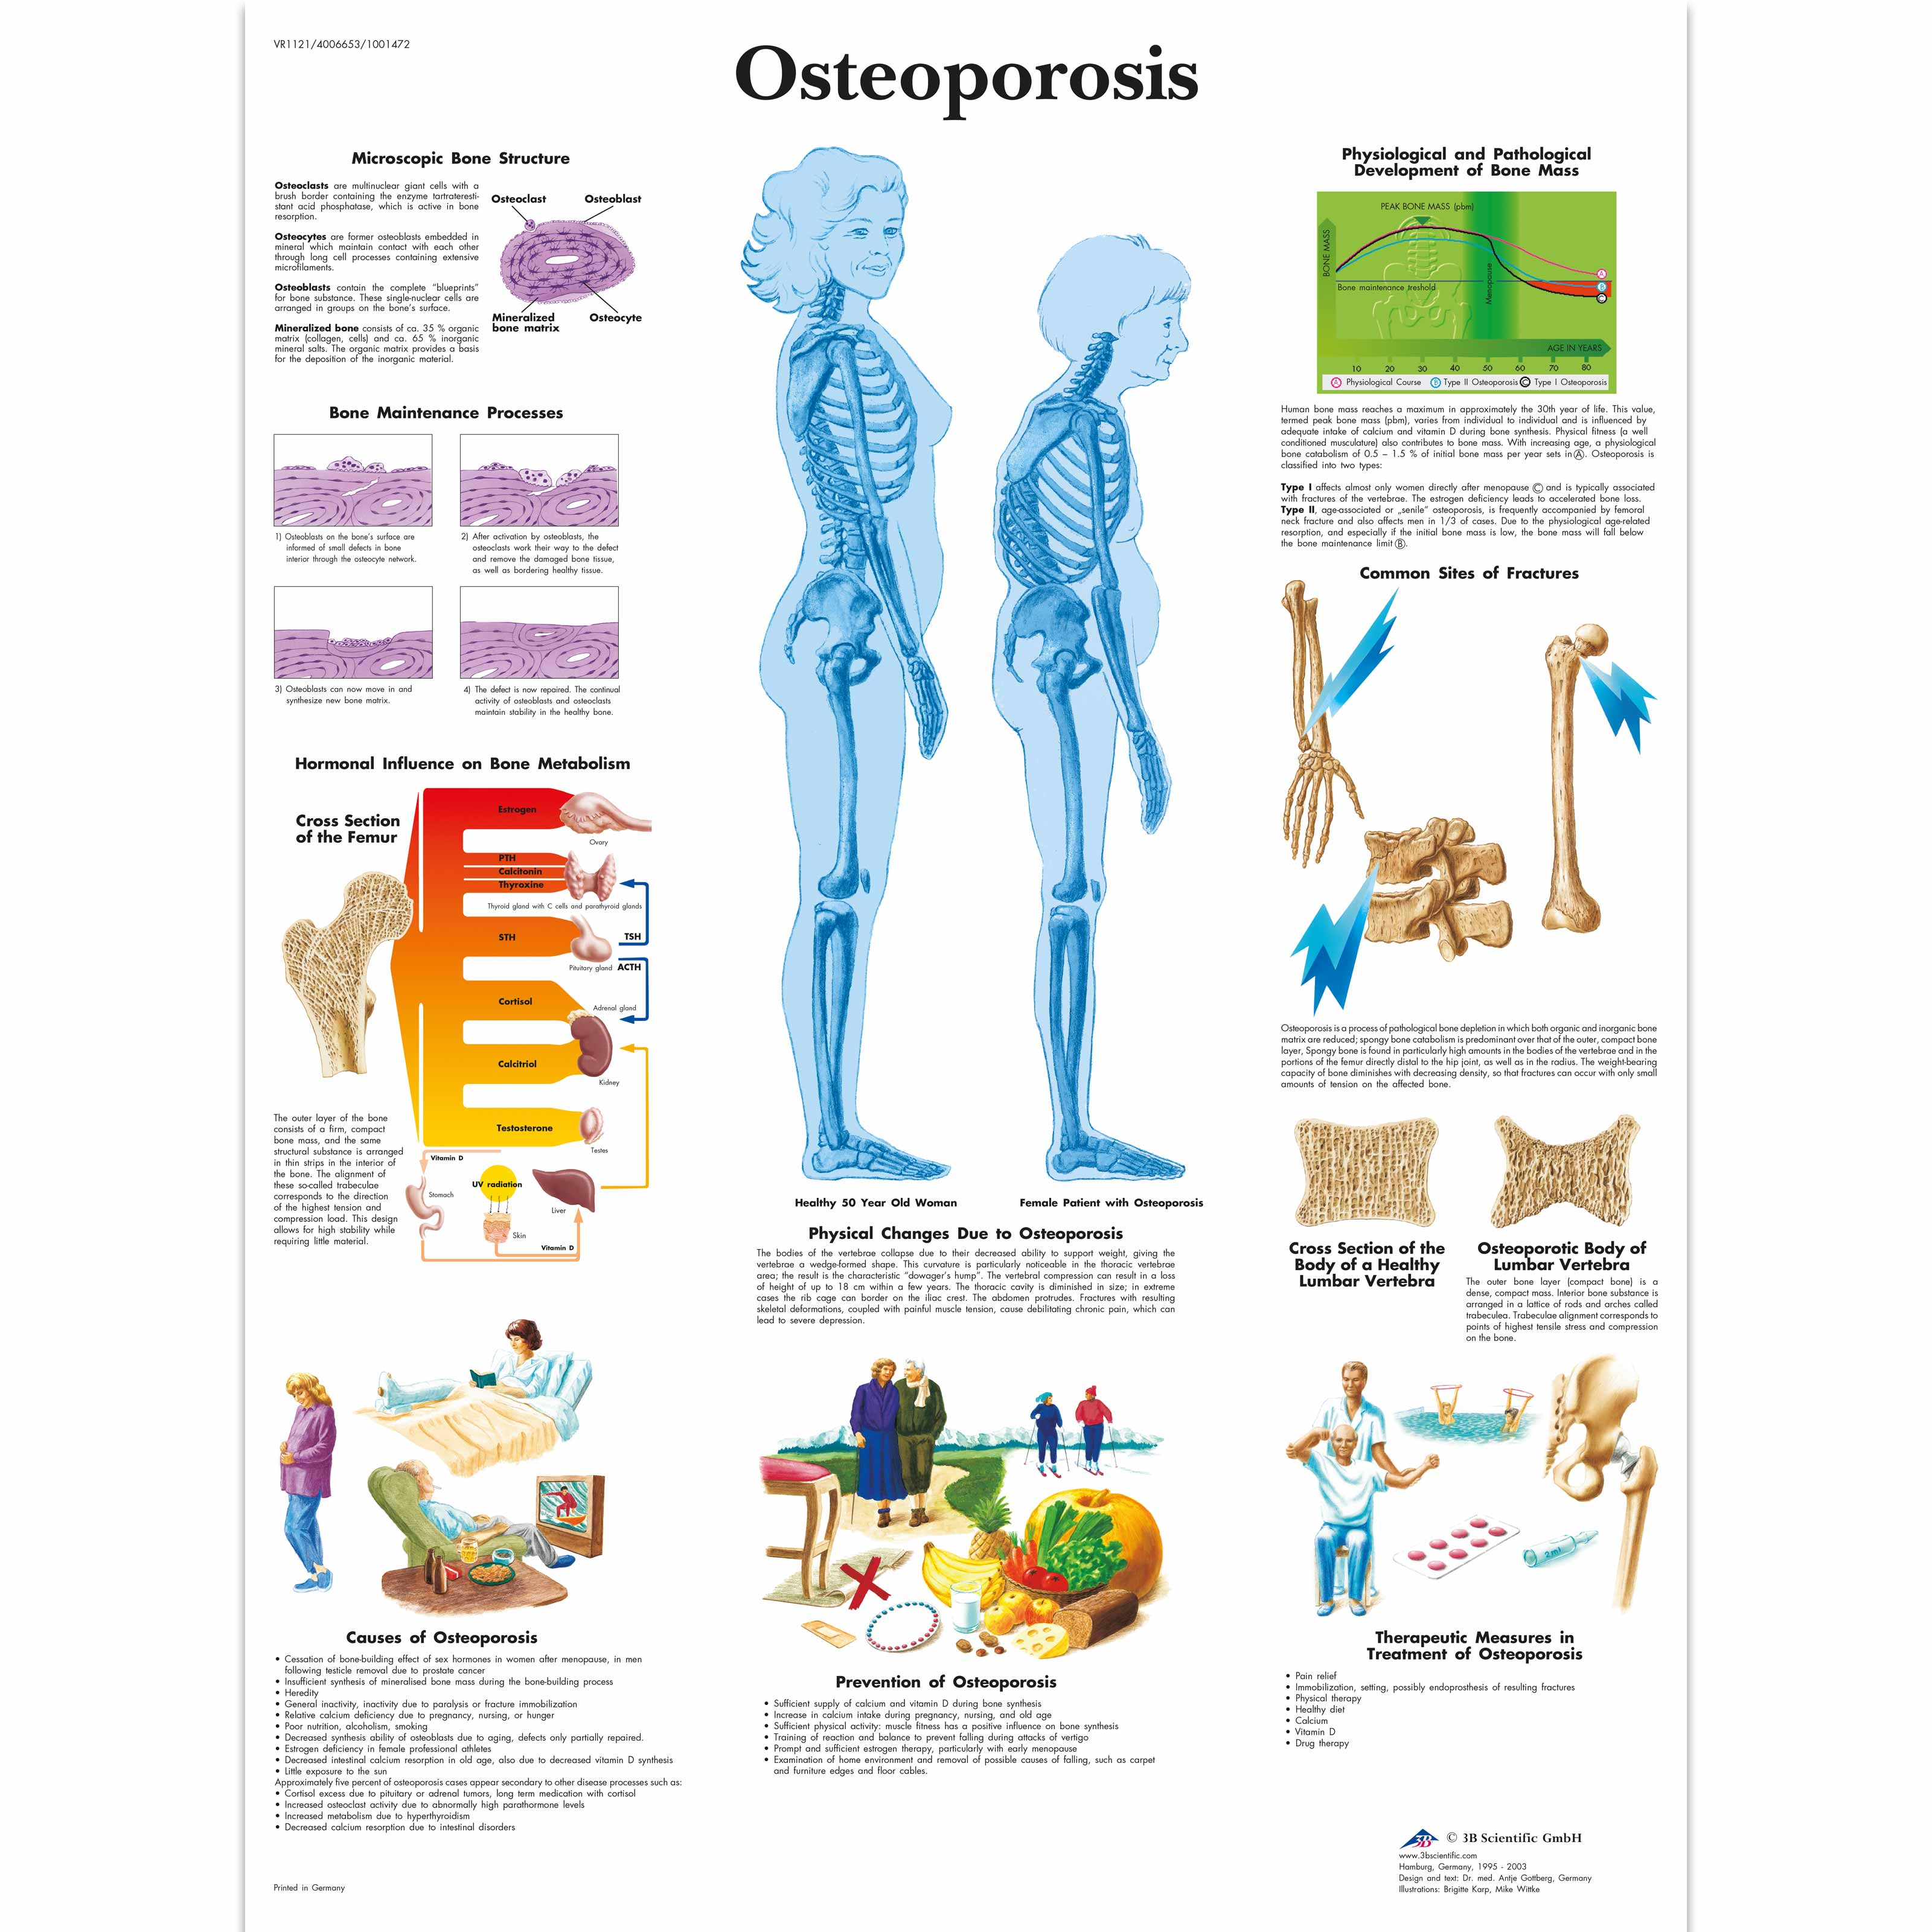 The Osteoporosis chart